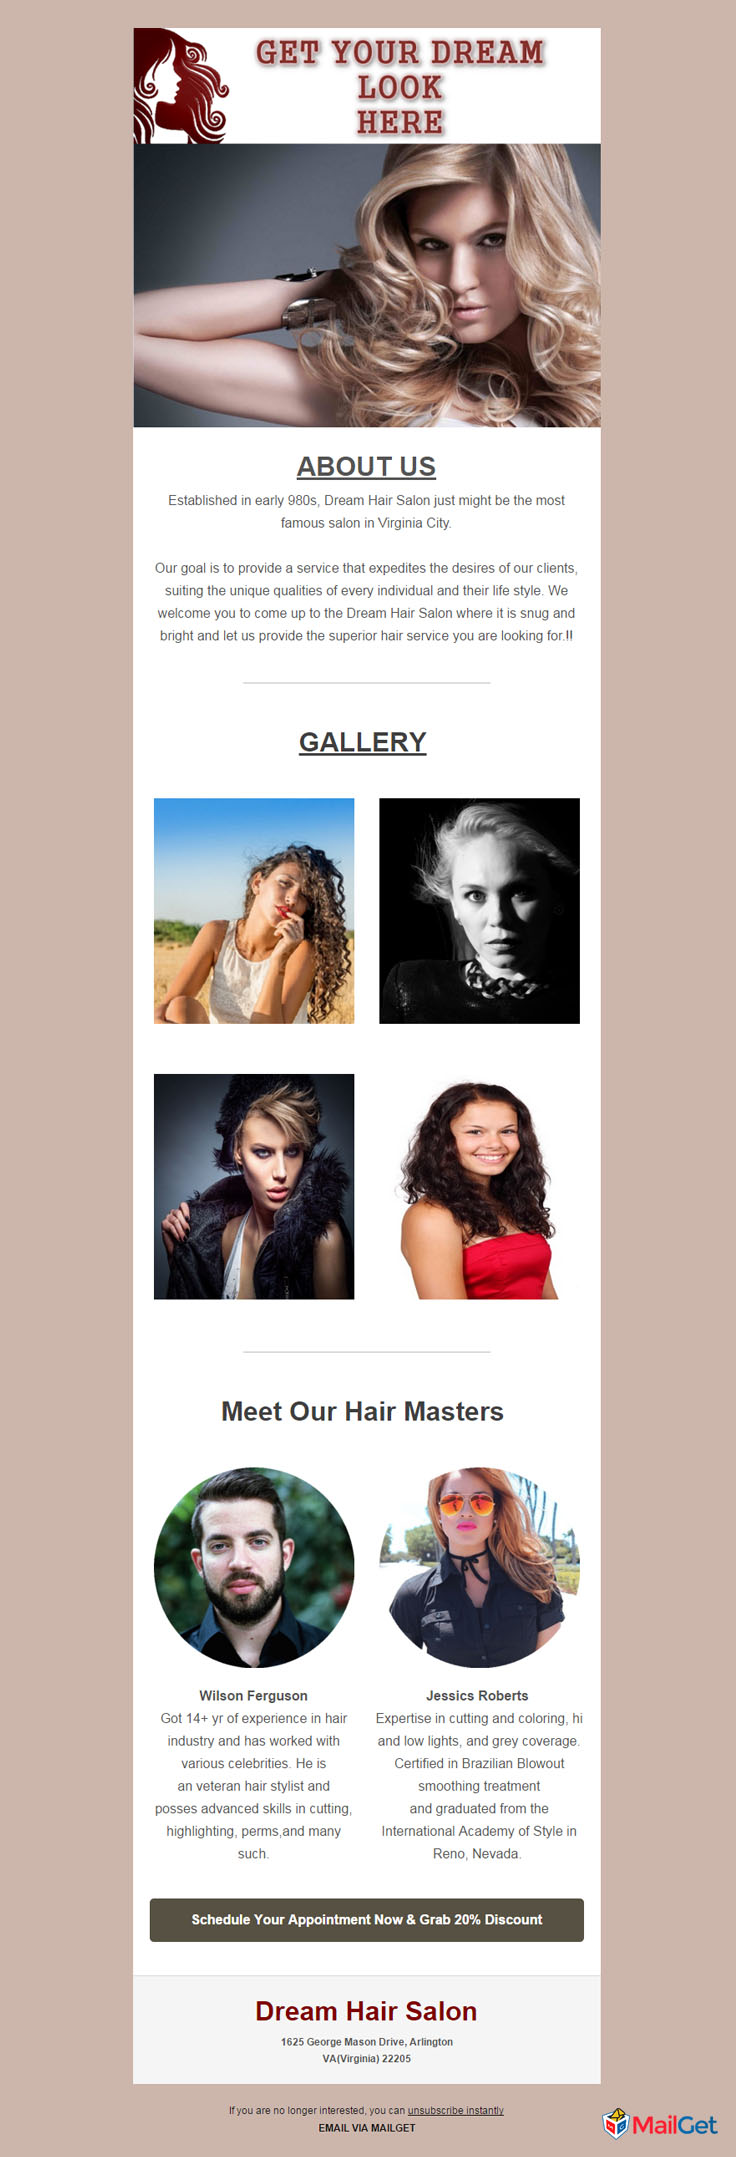 free-hair-salon-email-newsletter-templates-6-MailGet